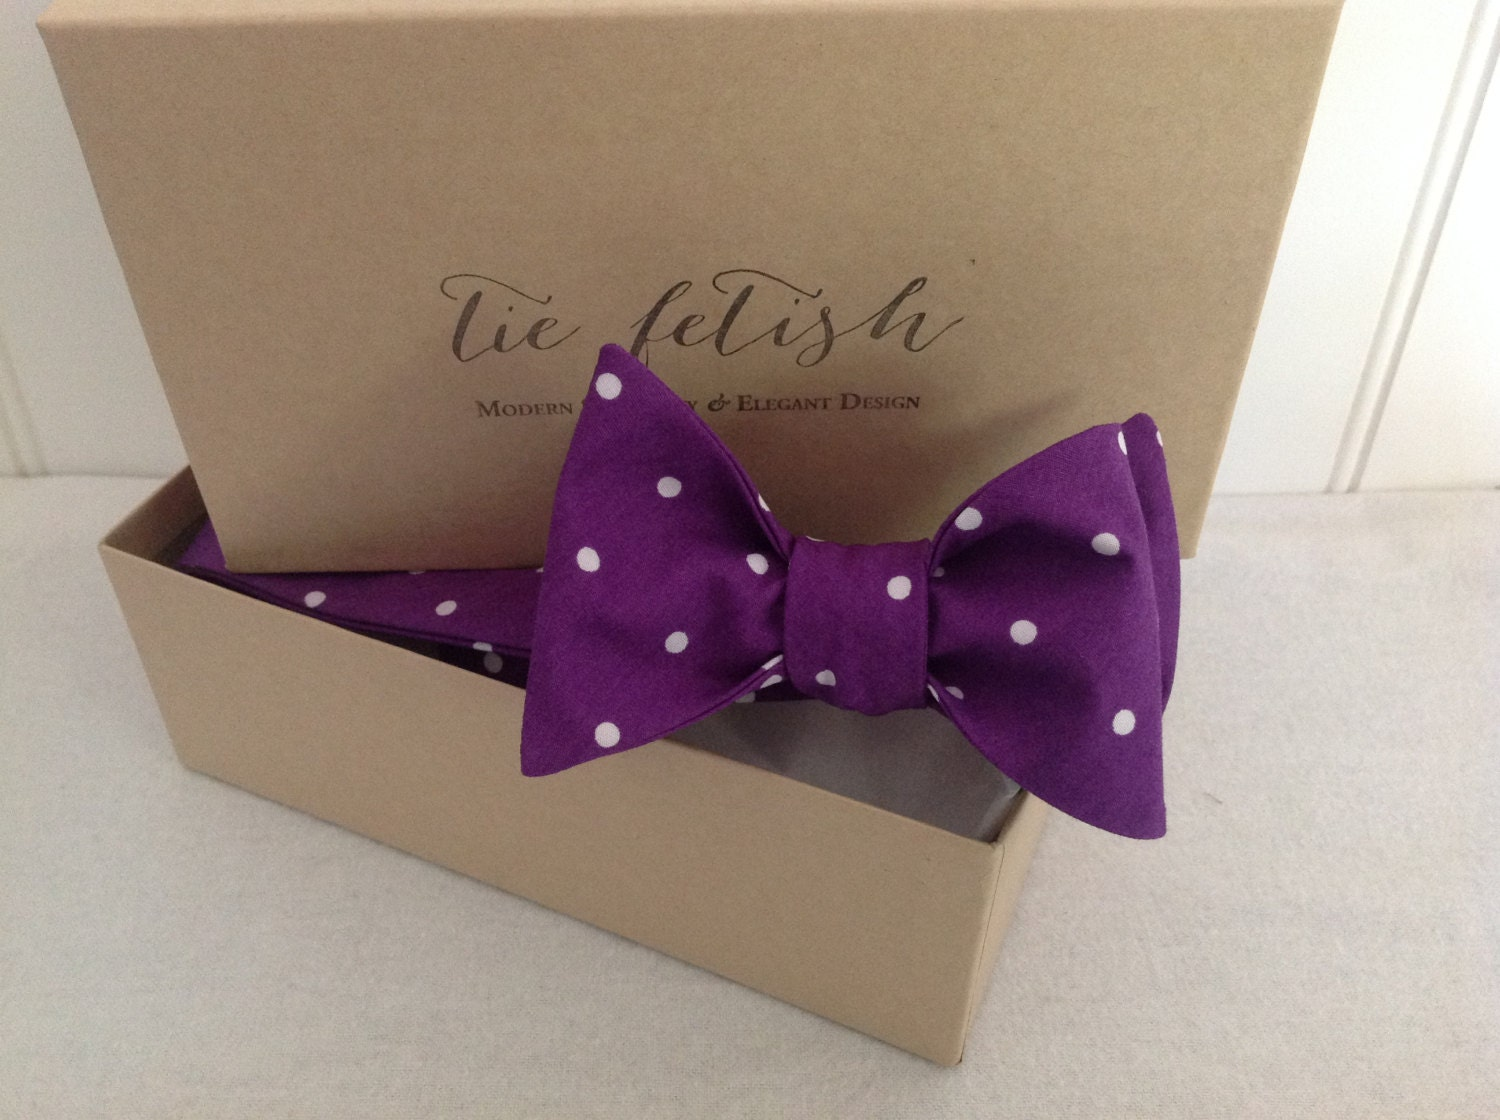 fb1a4c077a20 Purple and white dot bow tie, white plaid pocket square and purple ...